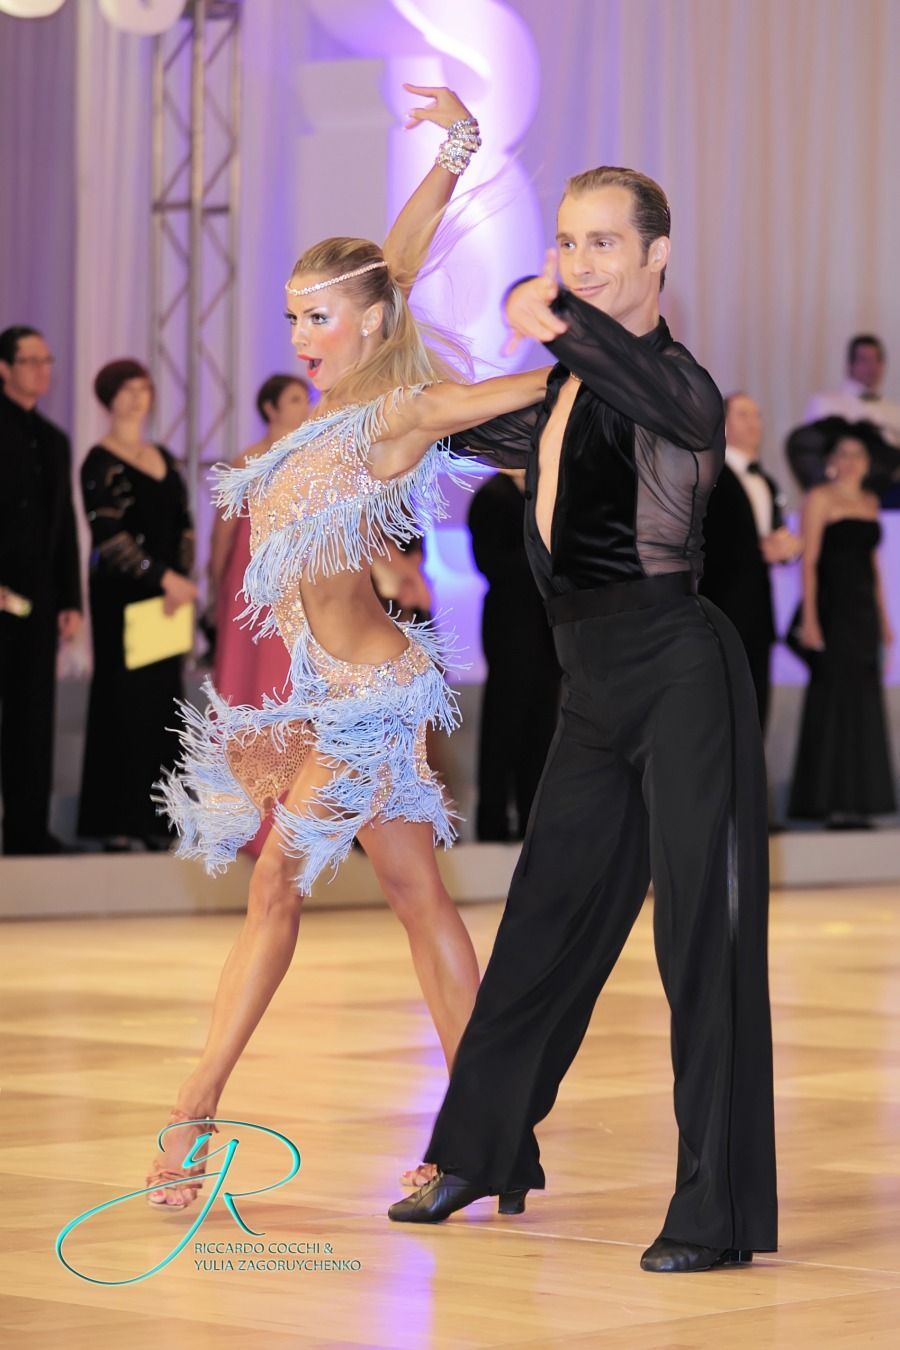 Salsa Bachata Or Latin Dance Dress   Worn By Yulia Zagoruychenko, Latin  Dress, Fashion, Latin, Spanish, Vibrant, Inspiration, Latin Dance